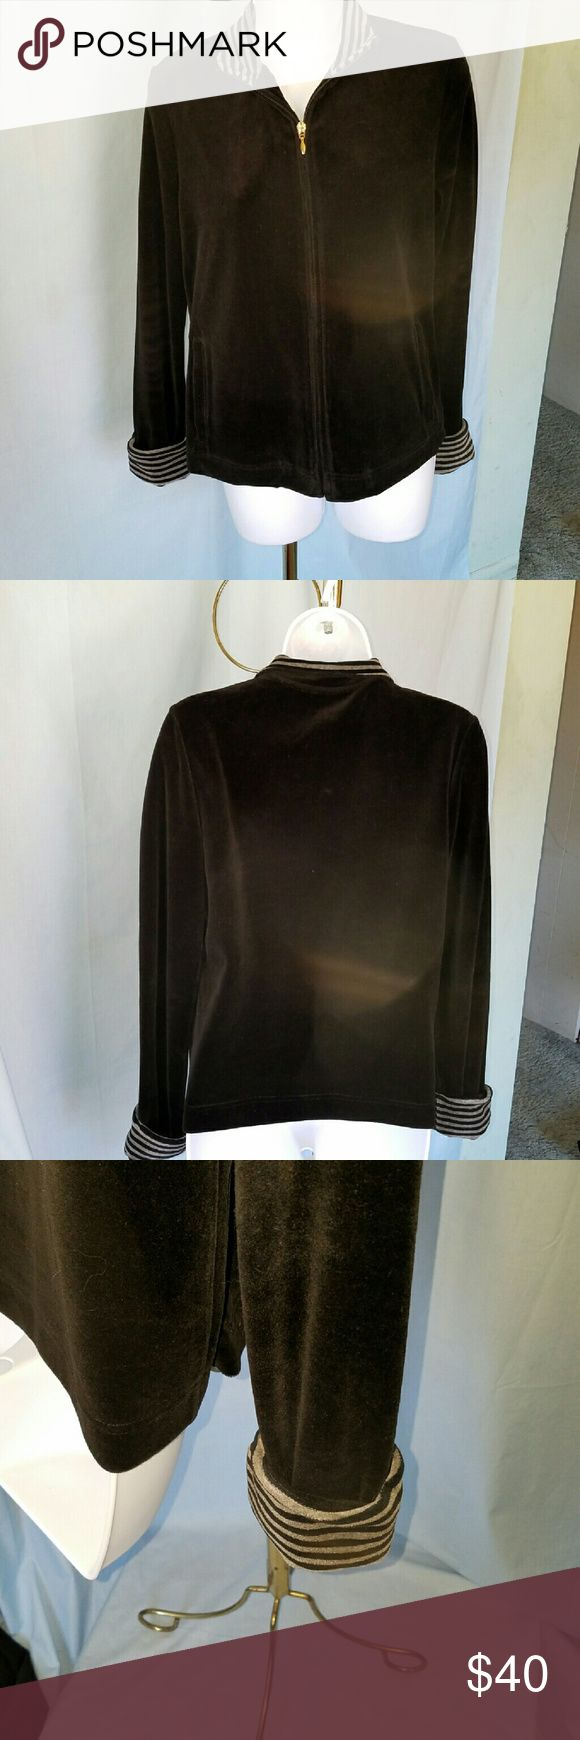 """!!NEW!! NWOT MACY'S CHARTER CLUB VELOUR JACKET MACY'S CHARTER CLUB BLACK SOFT VELOUR JACKET with gold tone zipper. Collar and cuffs are accented with grey and black stripes. """"Relaxed"""" by Charter Club. 74% cotton and 26% polyester.  Super soft and comfy! Charter Club Jackets & Coats"""